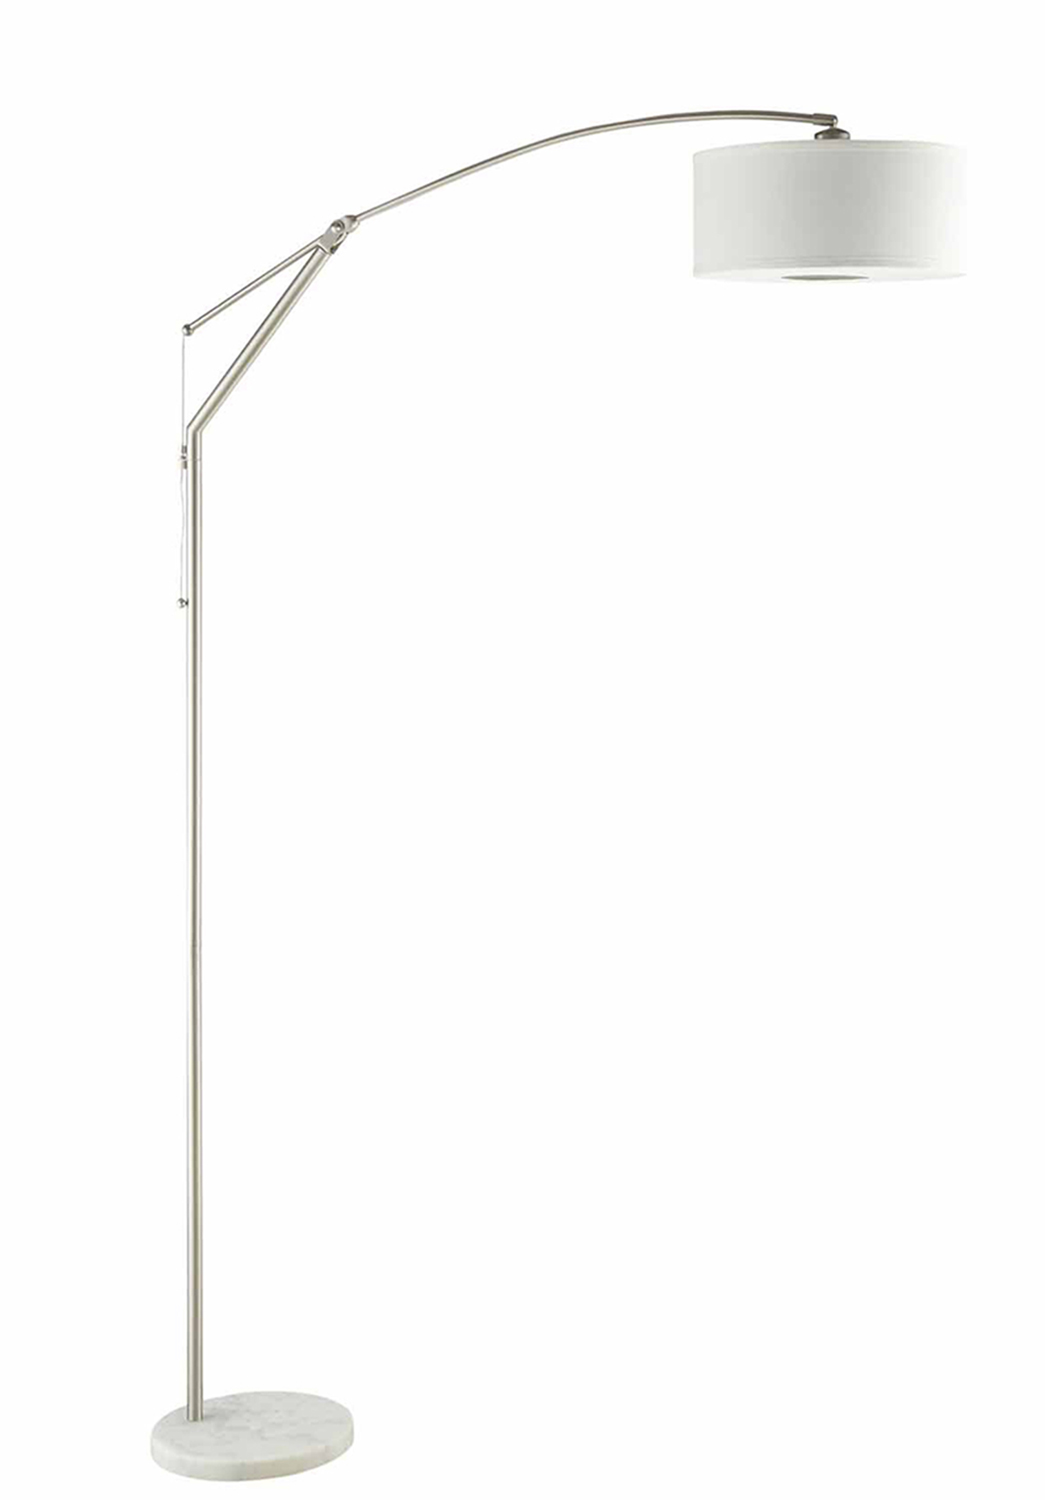 Coaster 901490 Floor Lamp - Chrome